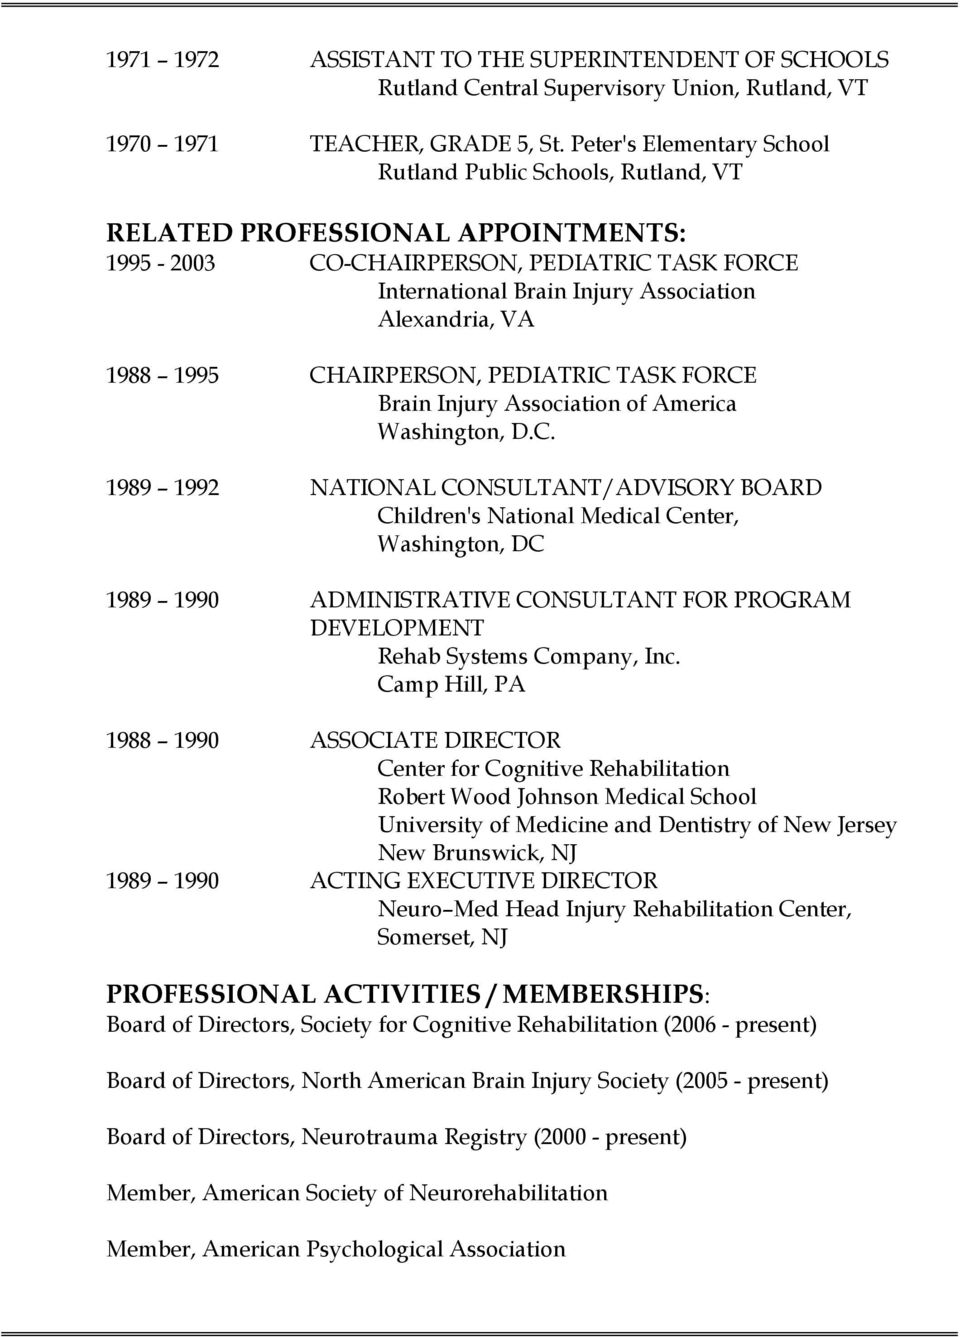 1988 1995 CHAIRPERSON, PEDIATRIC TASK FORCE Brain Injury Association of America Washington, D.C. 1989 1992 NATIONAL CONSULTANT/ADVISORY BOARD Children's National Medical Center, Washington, DC 1989 1990 ADMINISTRATIVE CONSULTANT FOR PROGRAM DEVELOPMENT Rehab Systems Company, Inc.